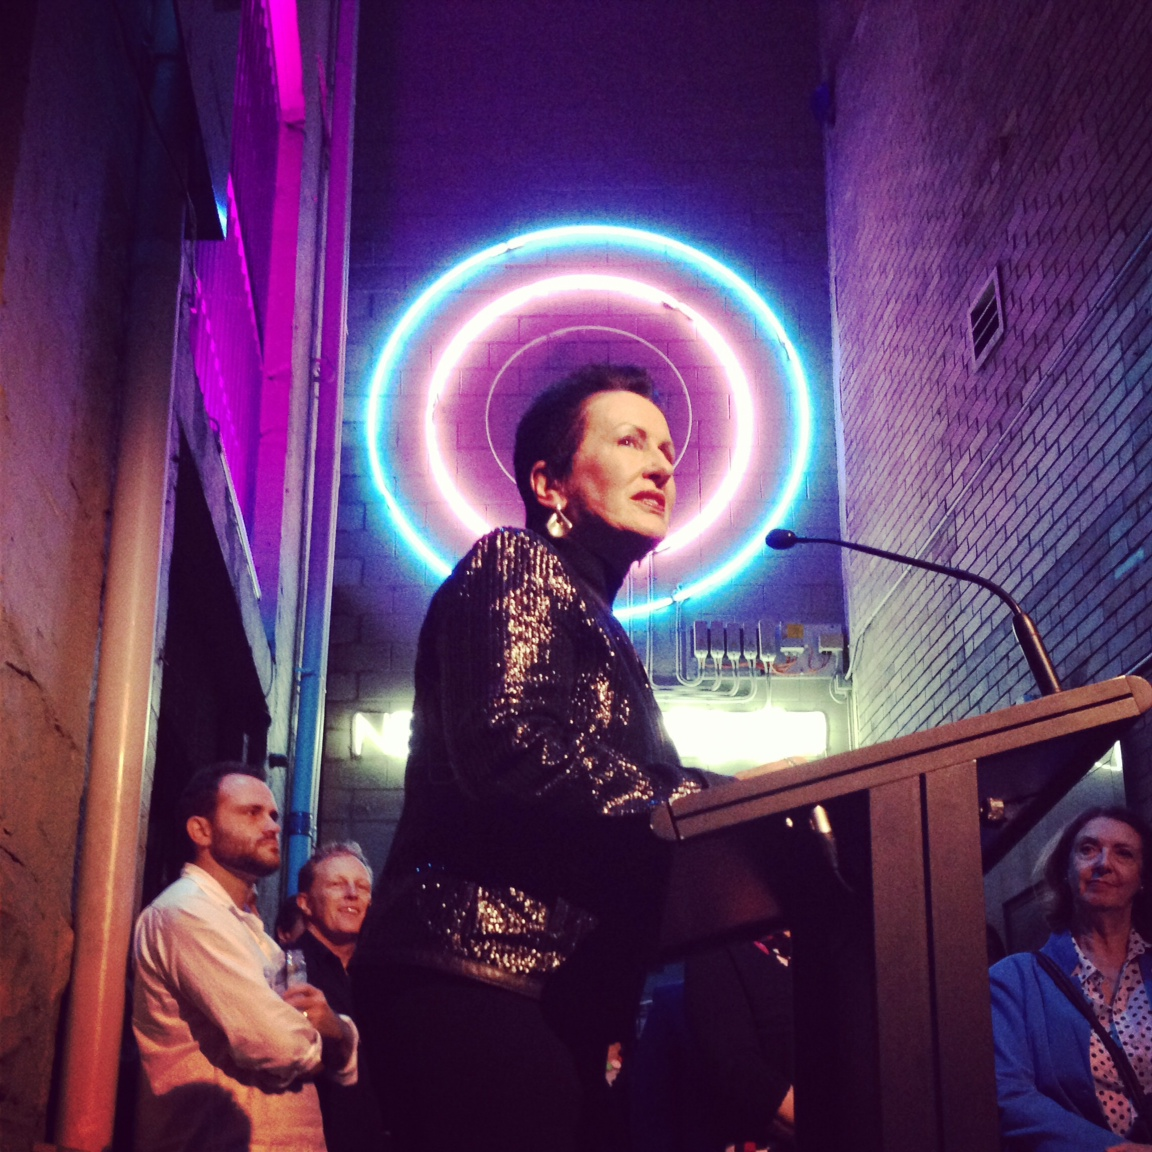 Ktcl Announces 10th Anniversary Of Keggs Eggs: Sydney Architecture Festival Opening Night